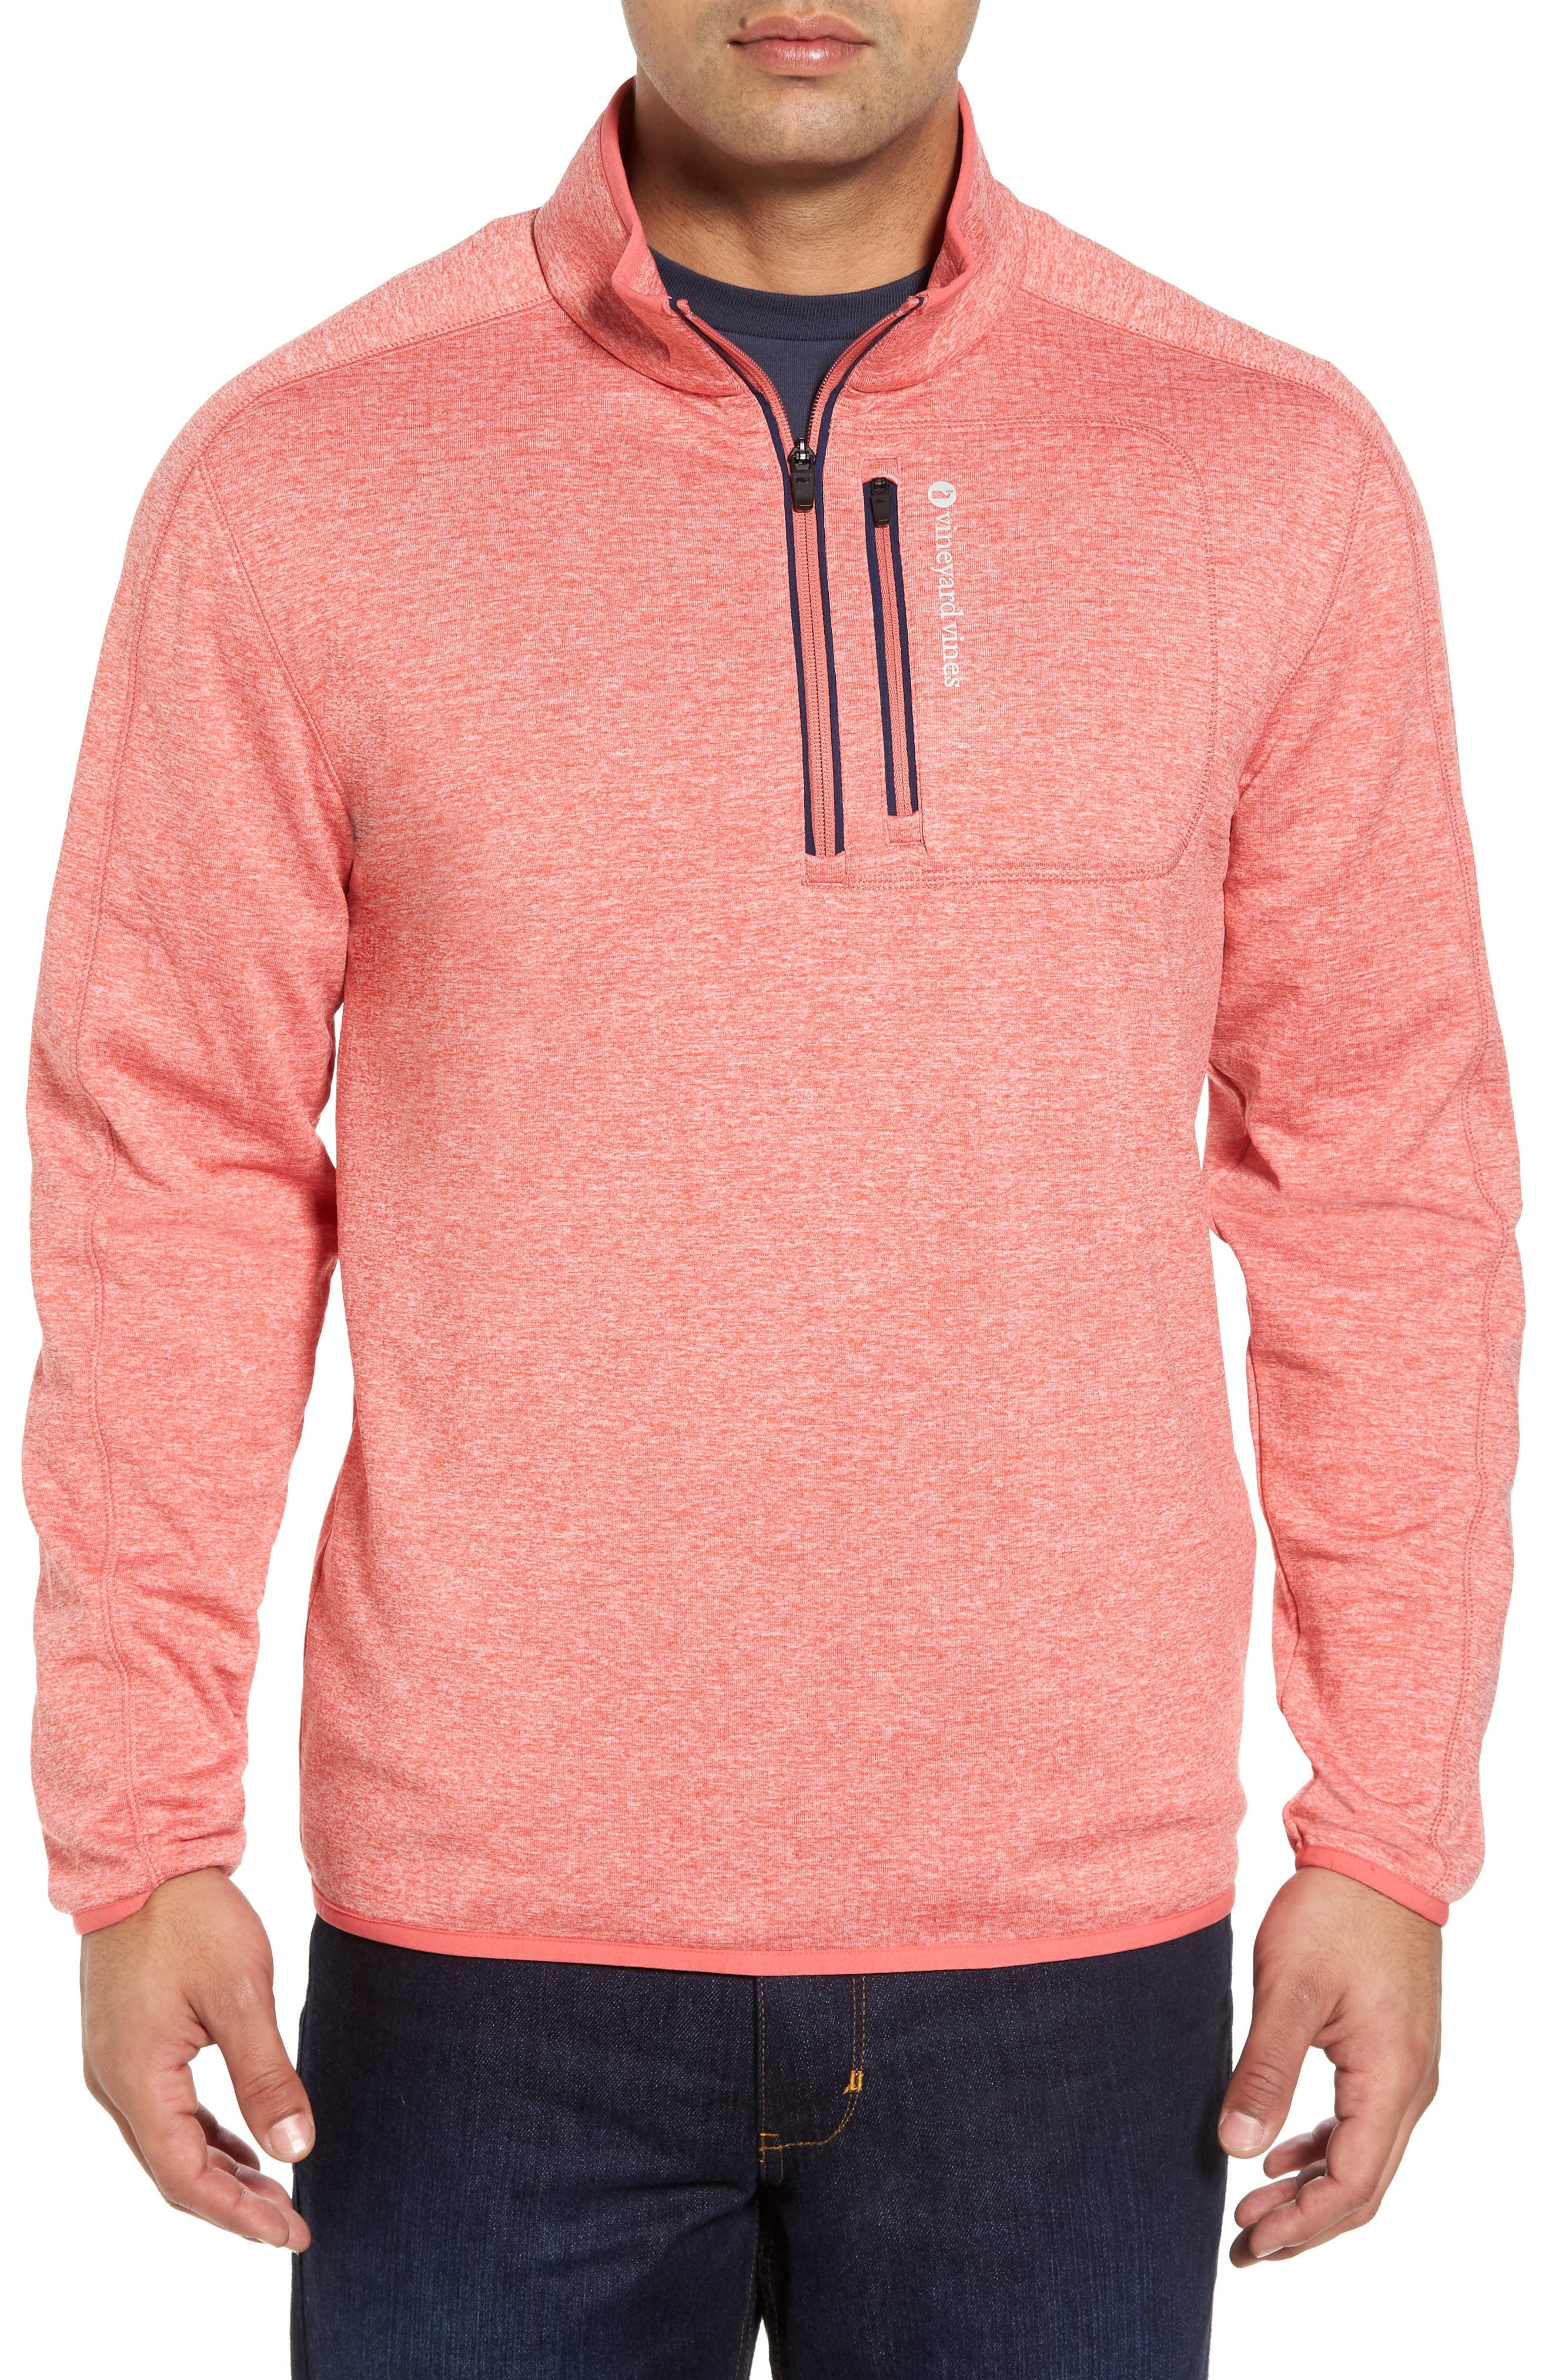 Grid Fleece Quarter Zip Pullover,                         Main,                         color, Jetty Red